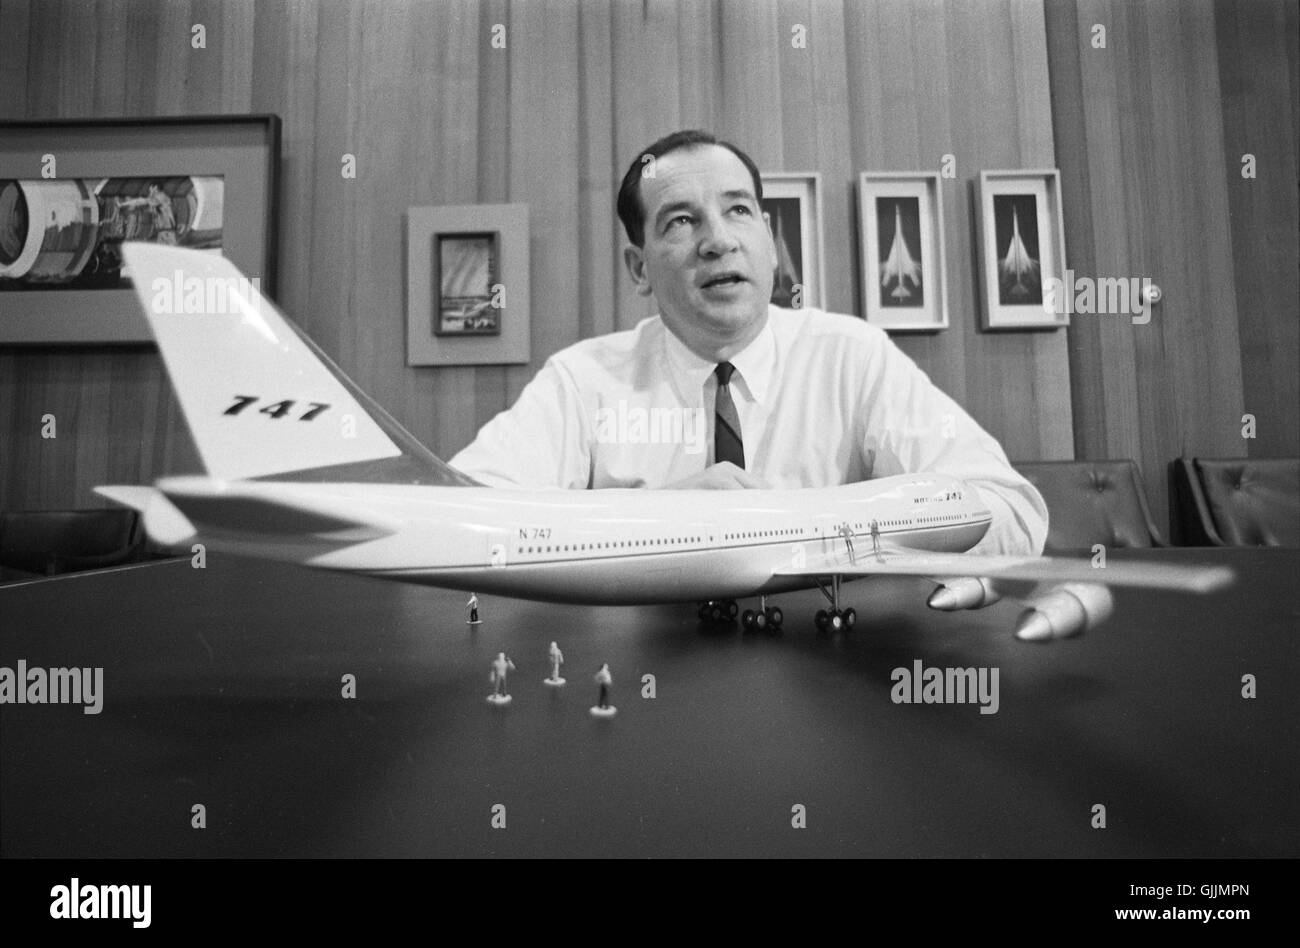 Joe Sutter of the Boeing Airplane Company - Stock Image